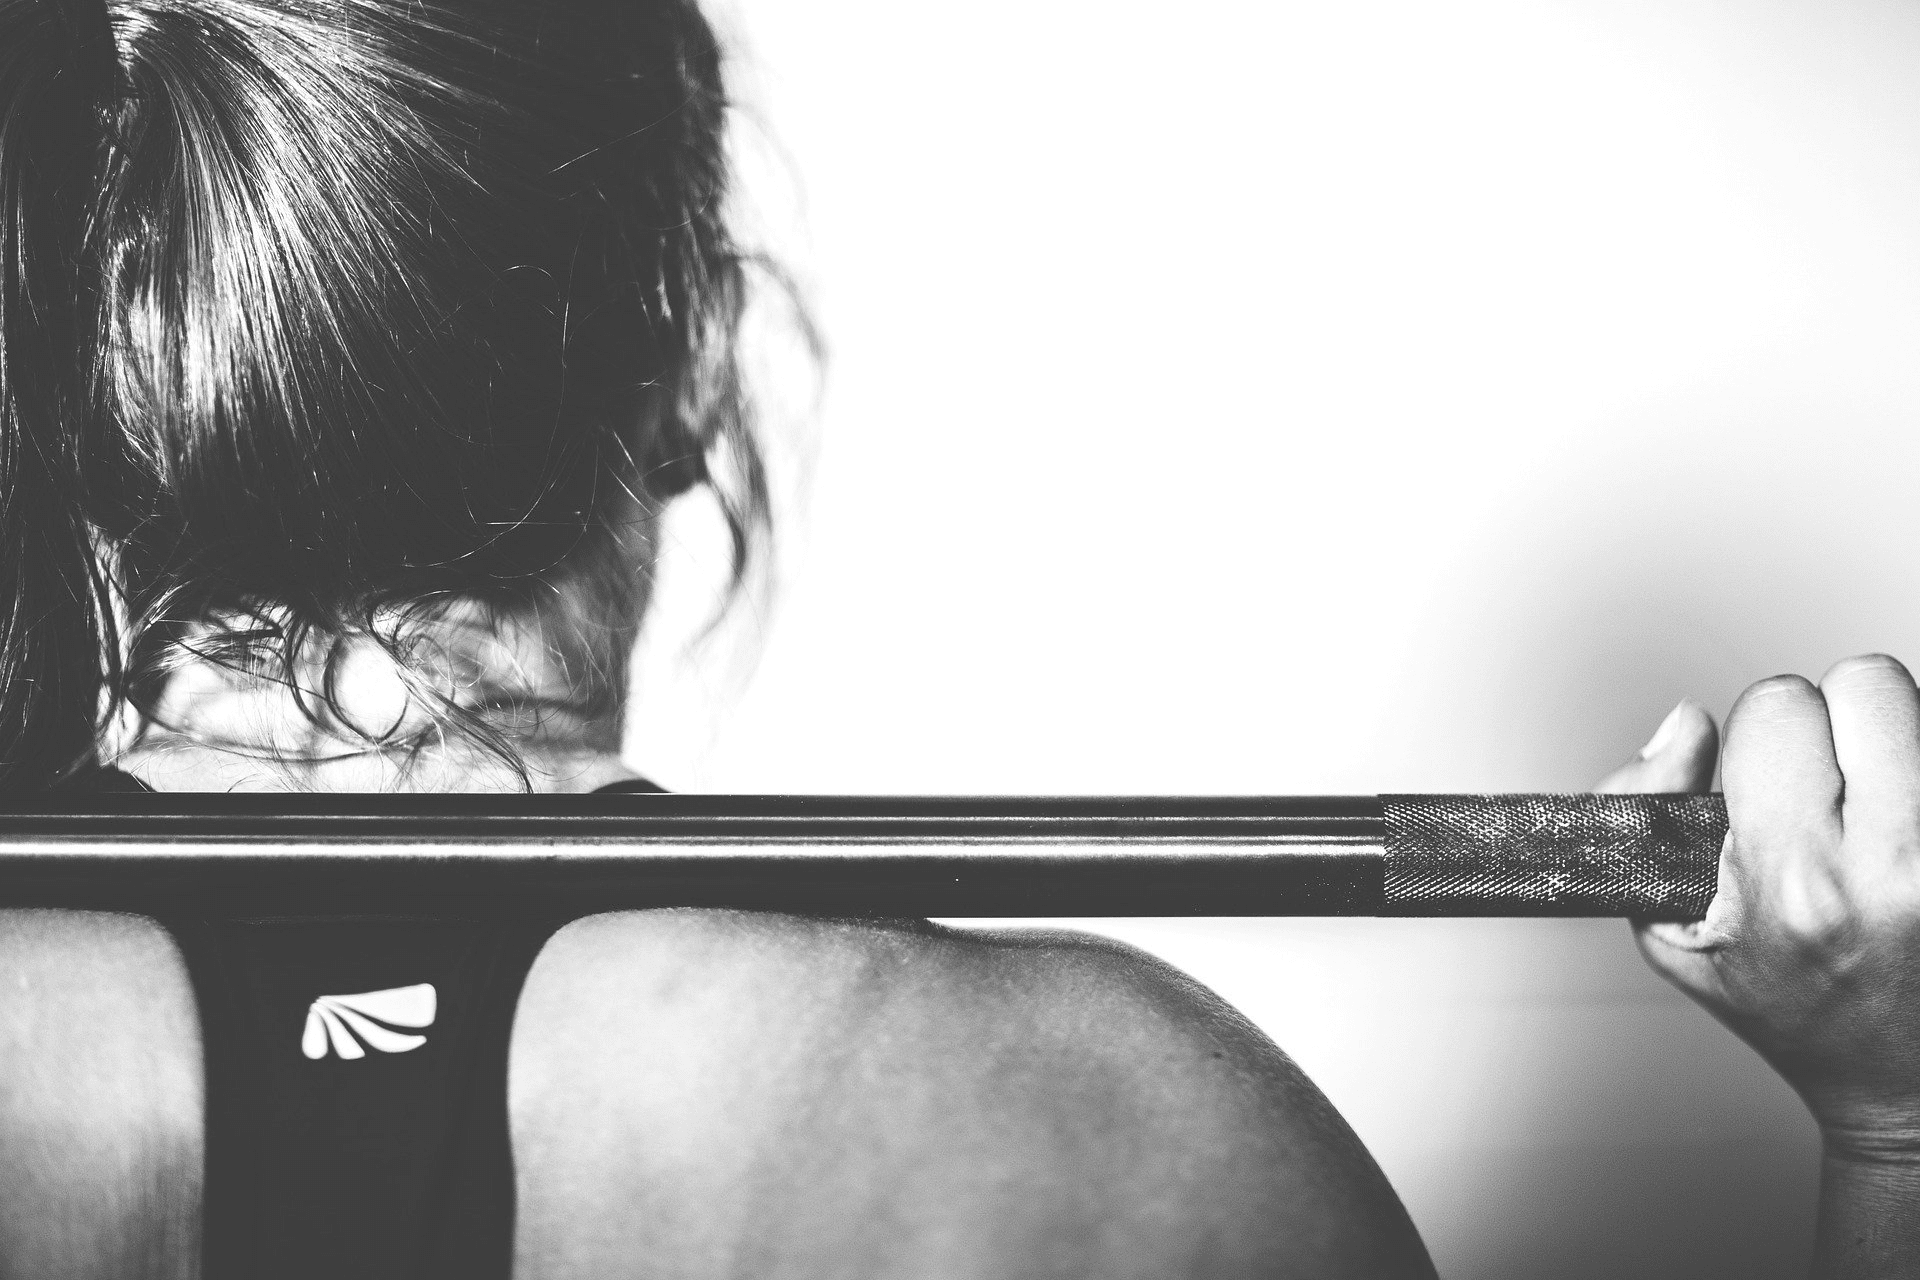 A person with a barbell on their back